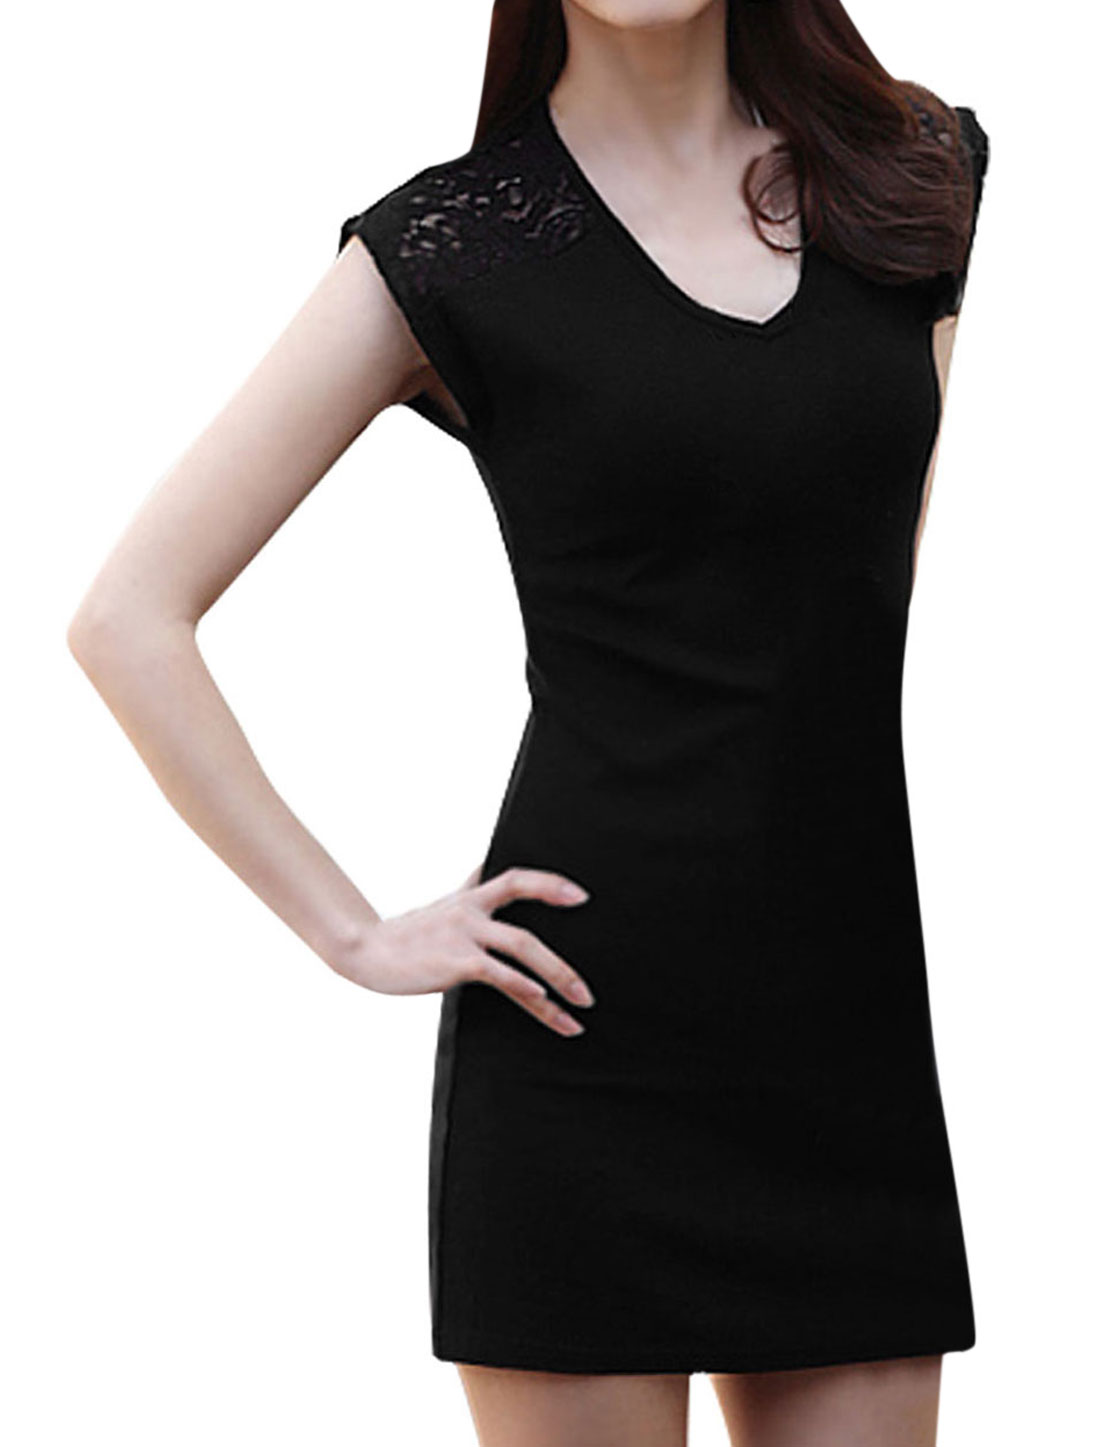 Ladies Cool Lace Panel Semi Sheer Detail Sheathy Dress Black M